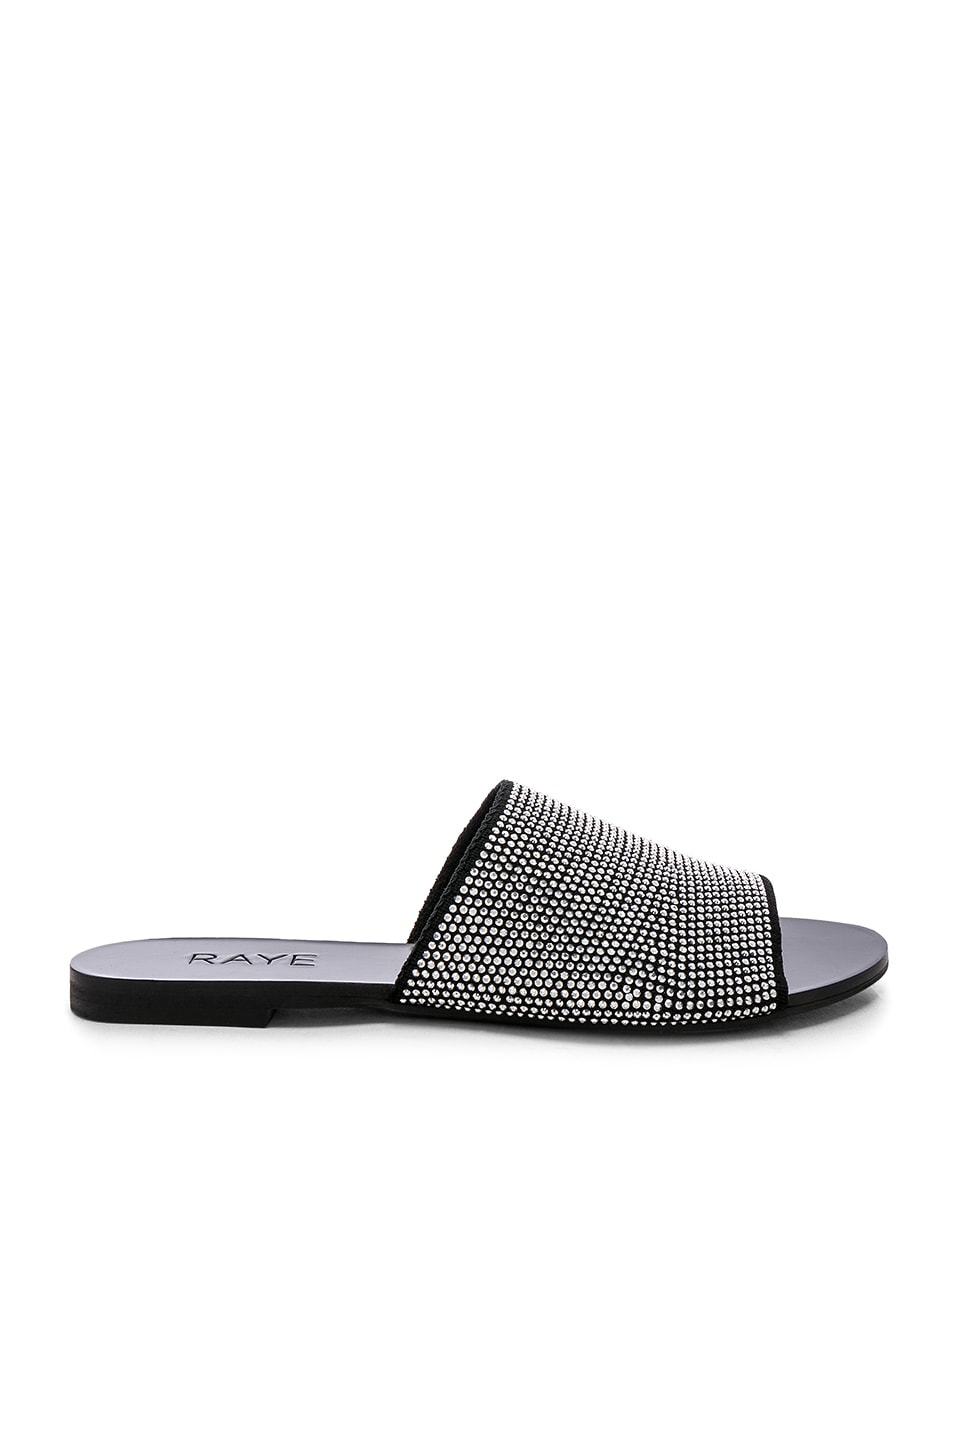 RAYE Packer Sandal in Black